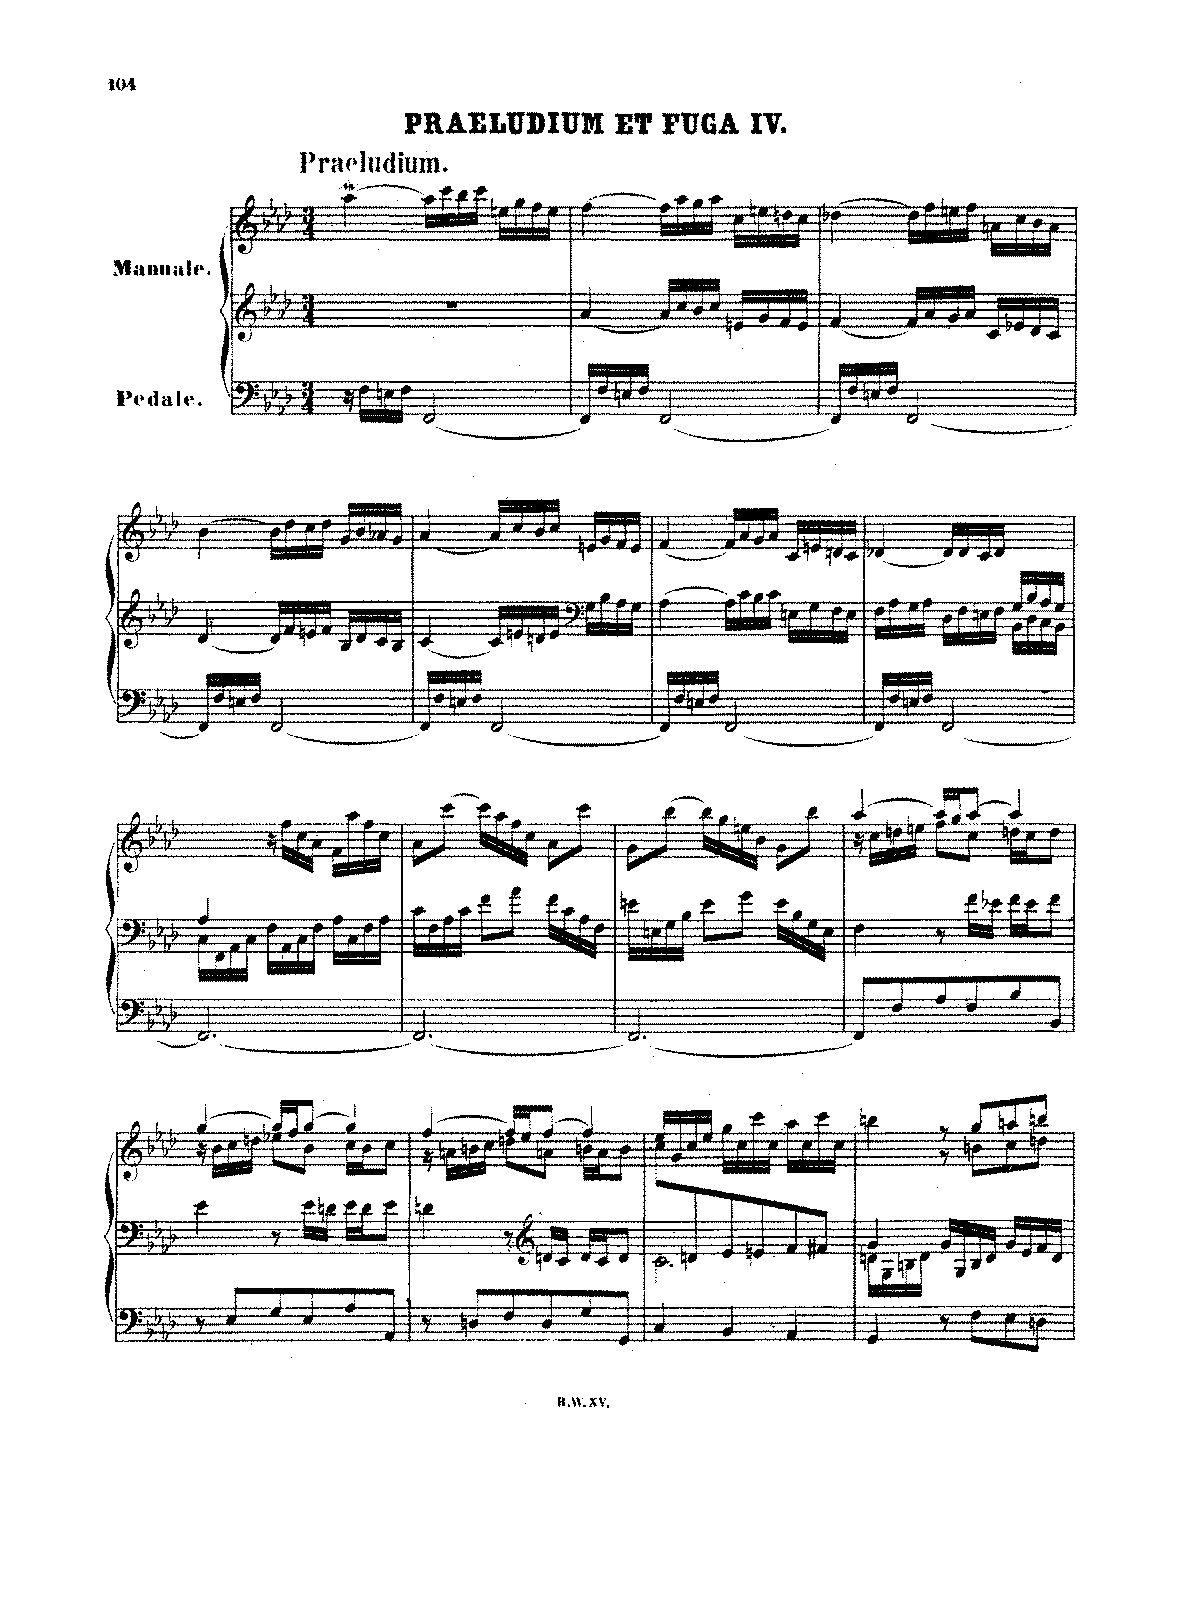 preludium c major bach